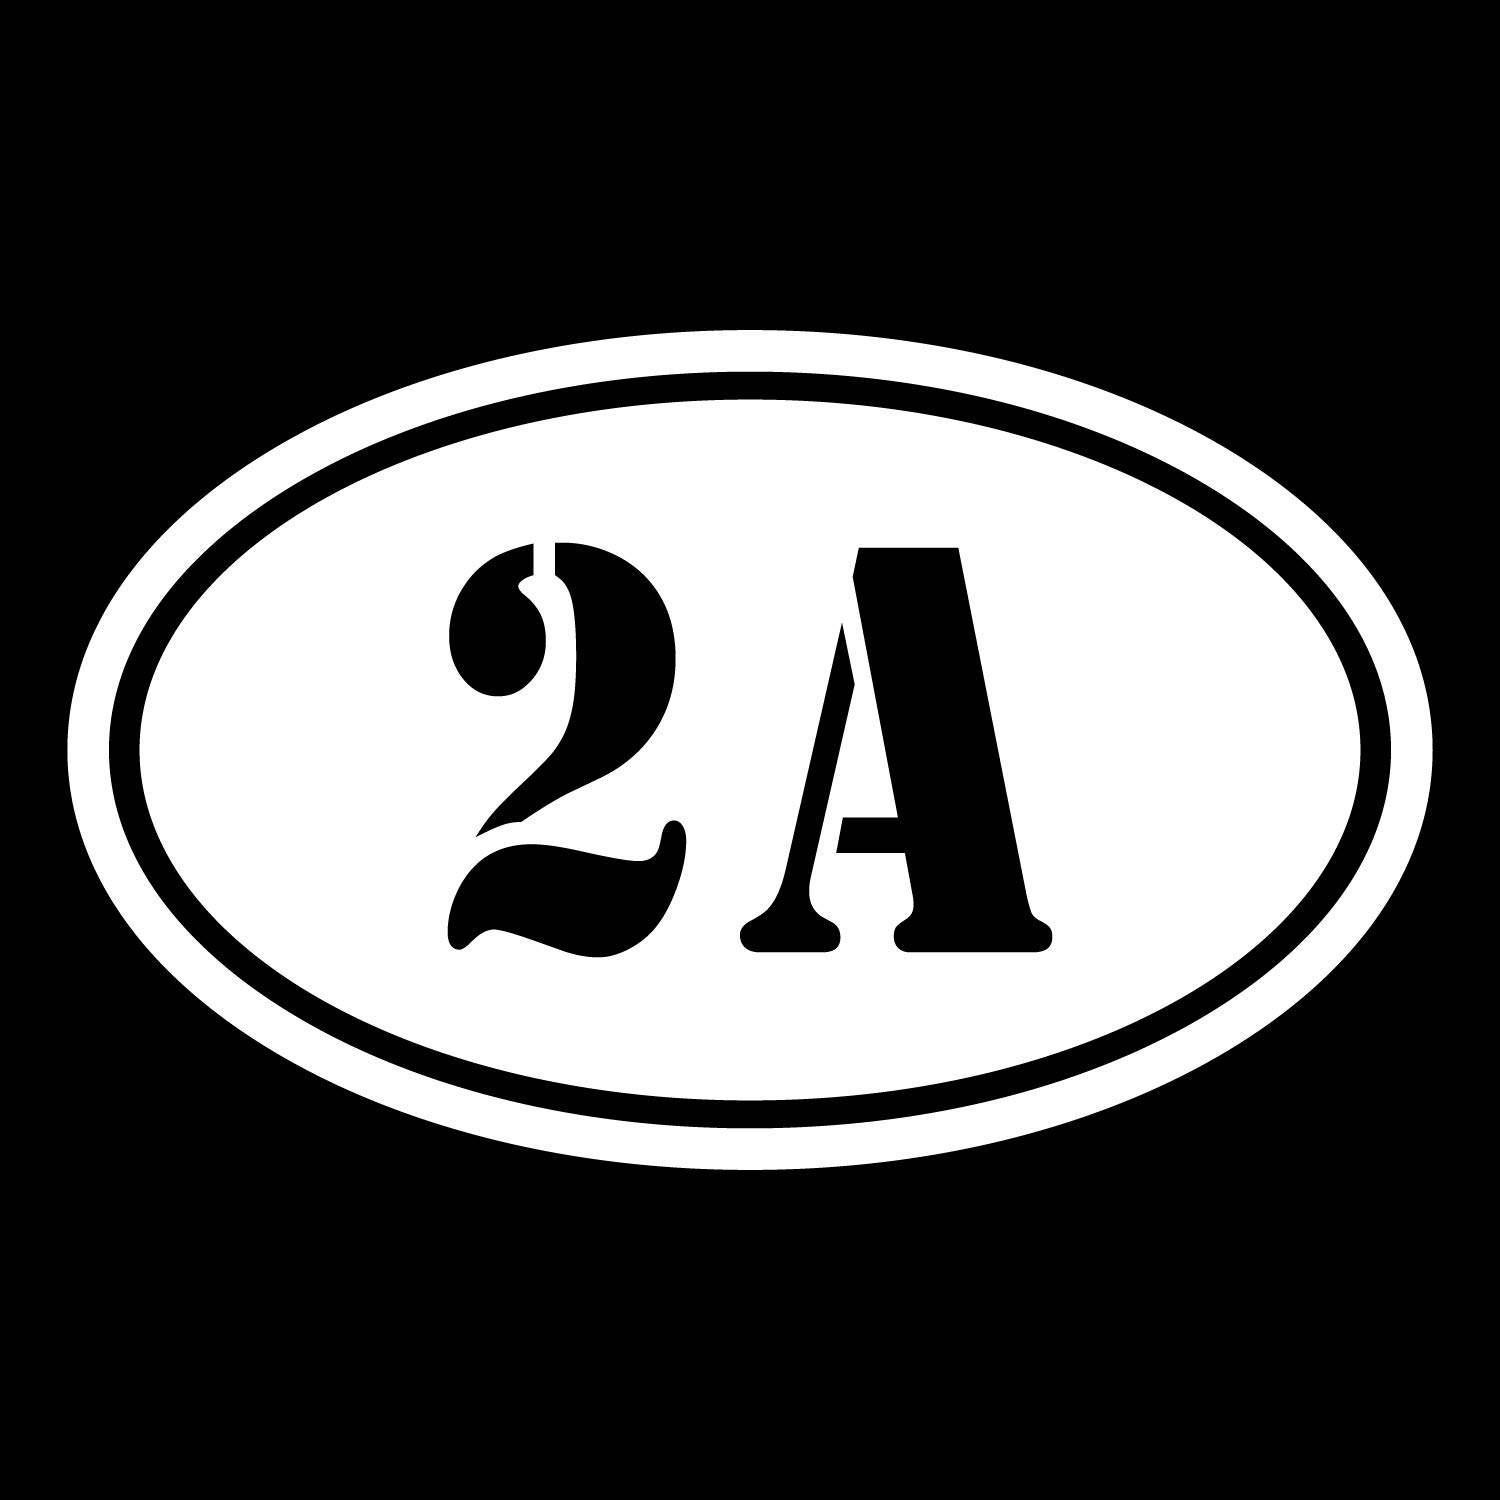 More Shiz 2A 2nd Amendment Vinyl Decal Sticker Car Truck Van SUV Window Wall Cup Laptop One 5.5 Inch White Decal MKS0675